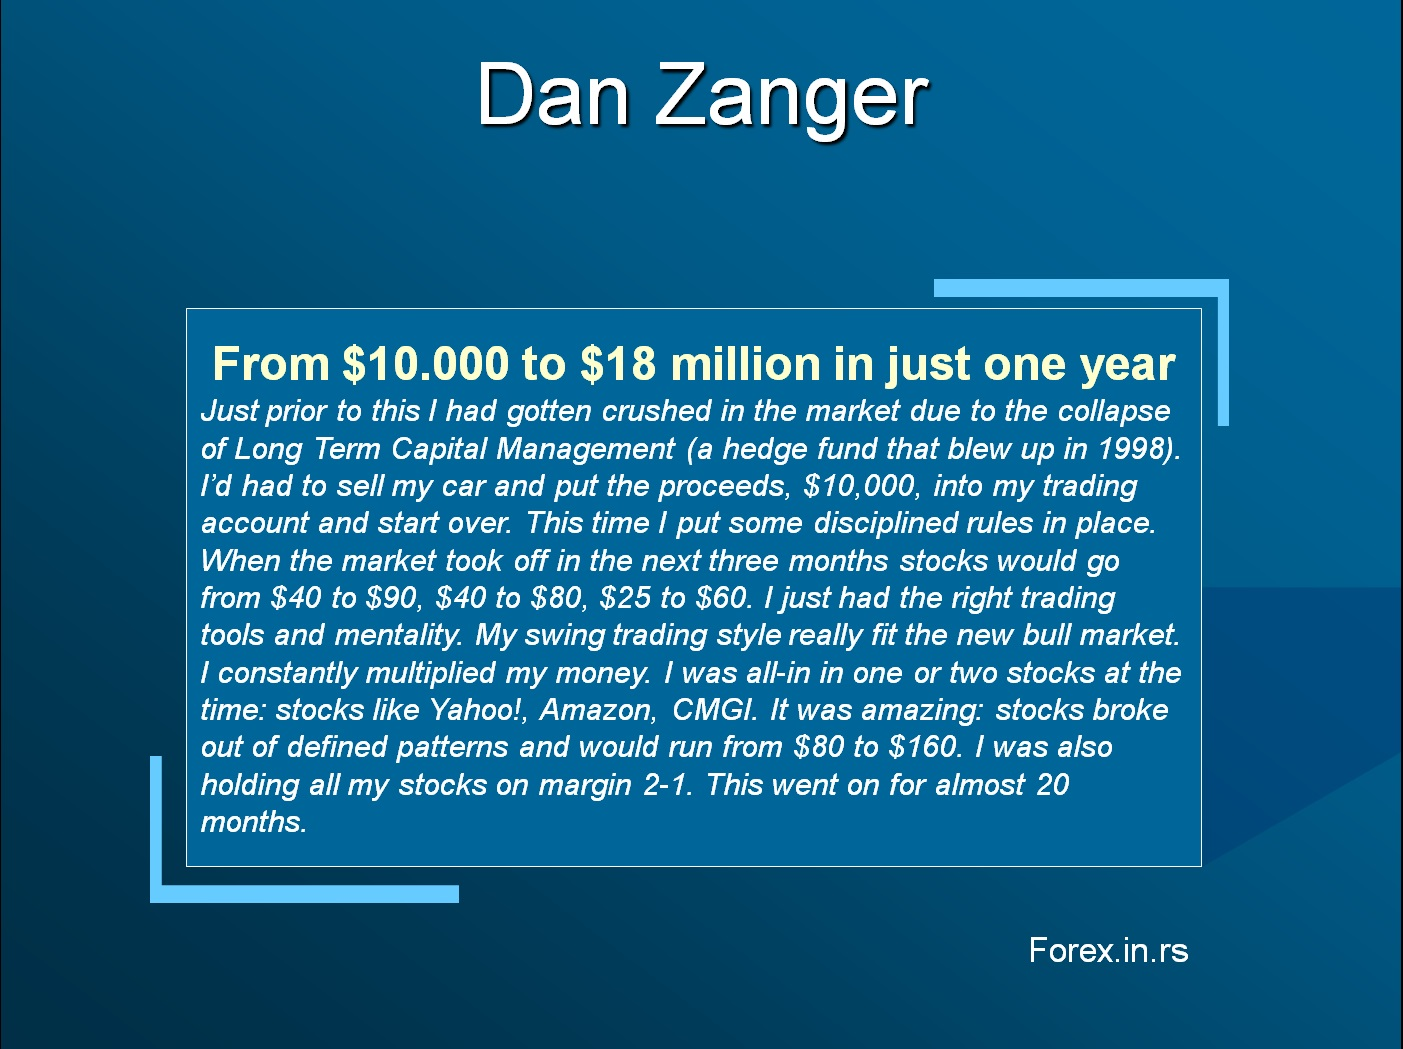 dan zanger portfolio success